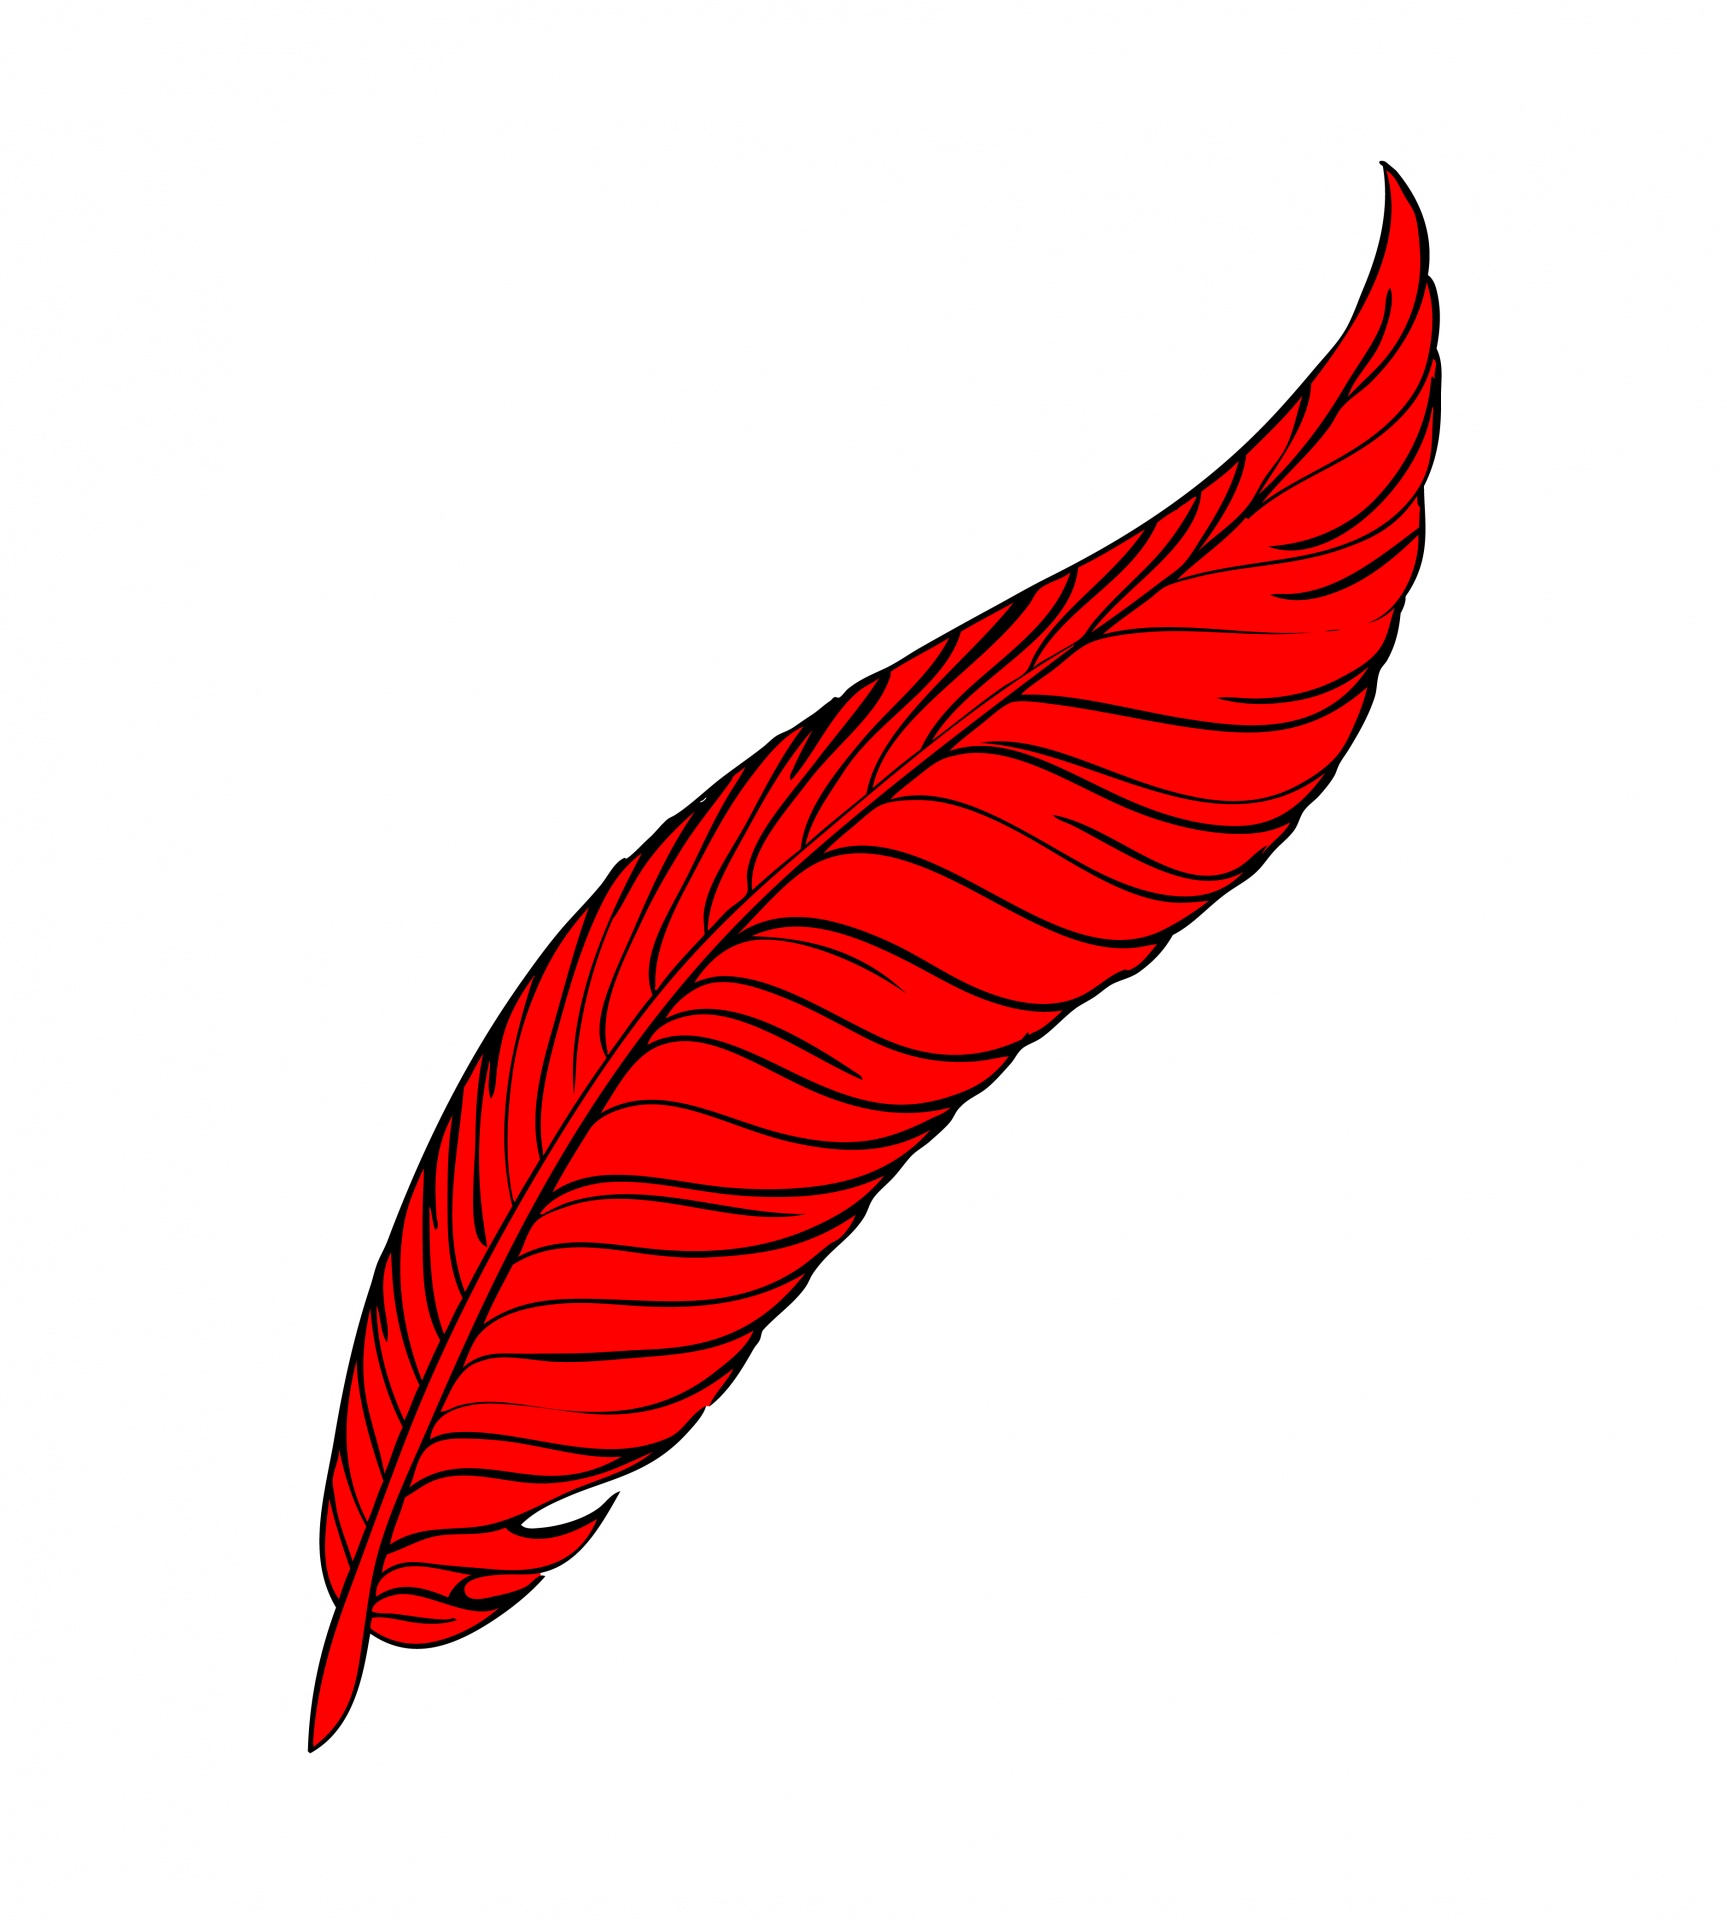 Feather clipart logo. Red line art free